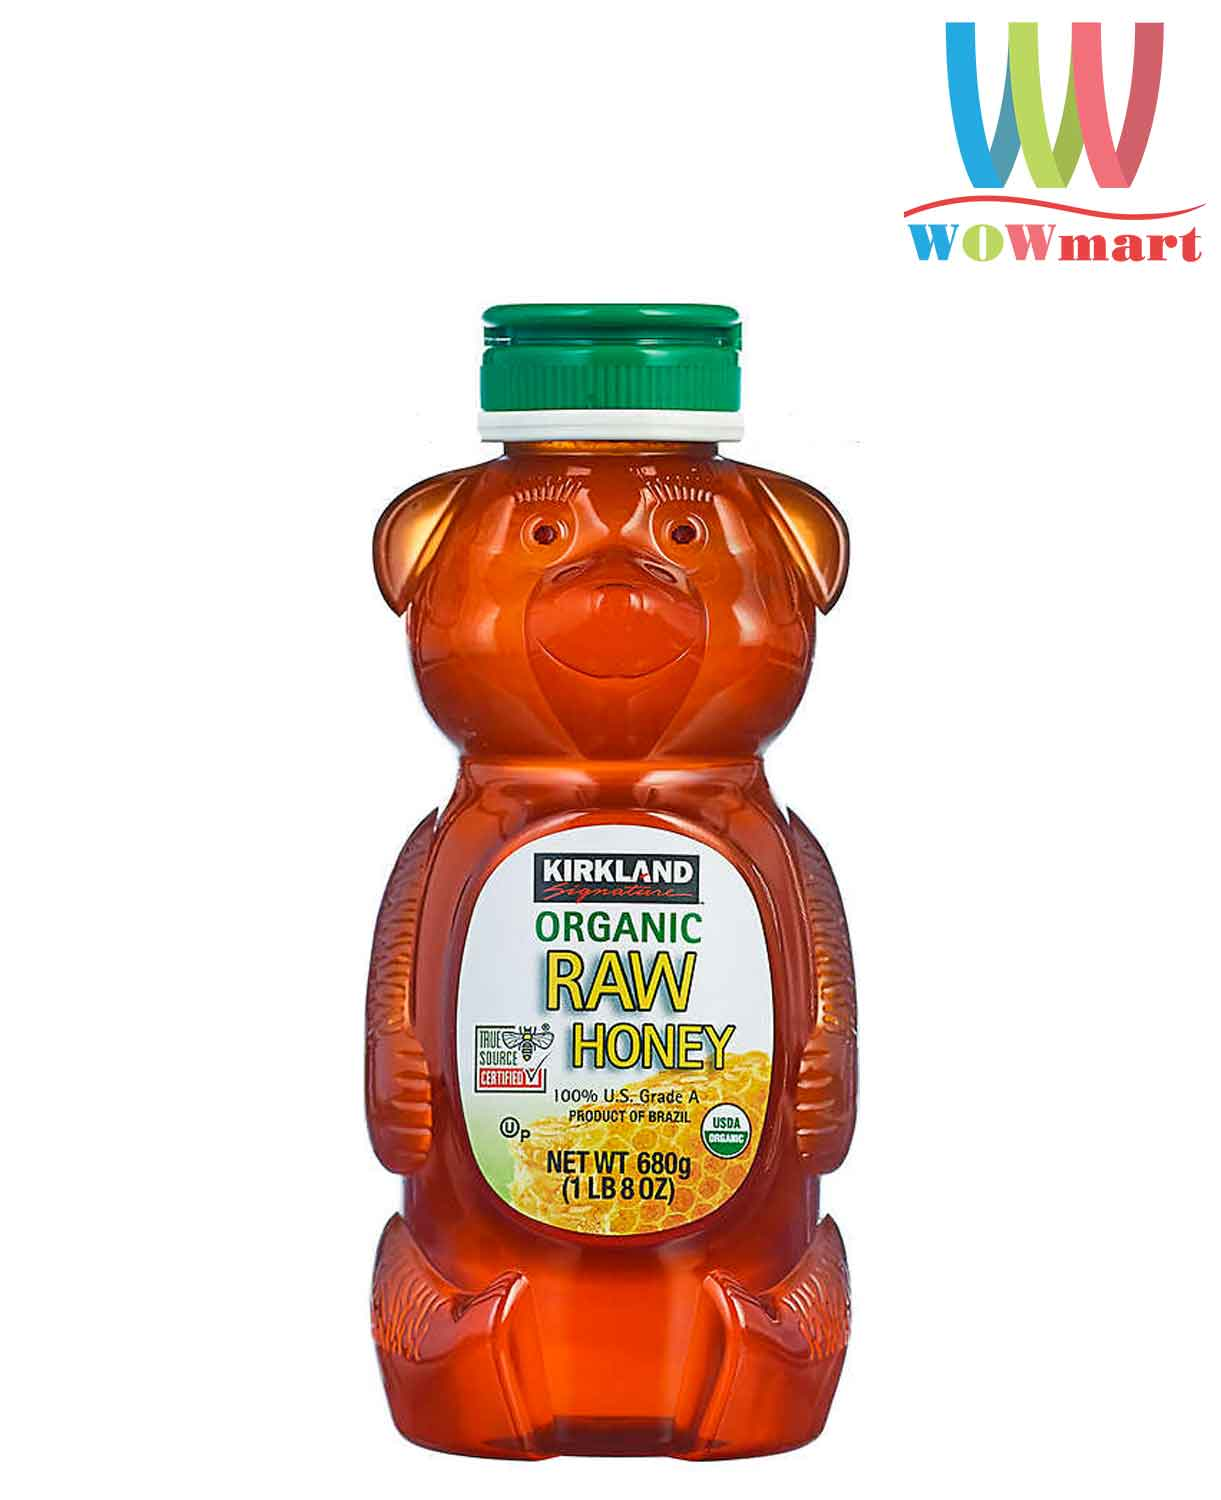 mat-ong-kirkland-con-gau-kirkland-signature-raw-organic-honey-bear-680g